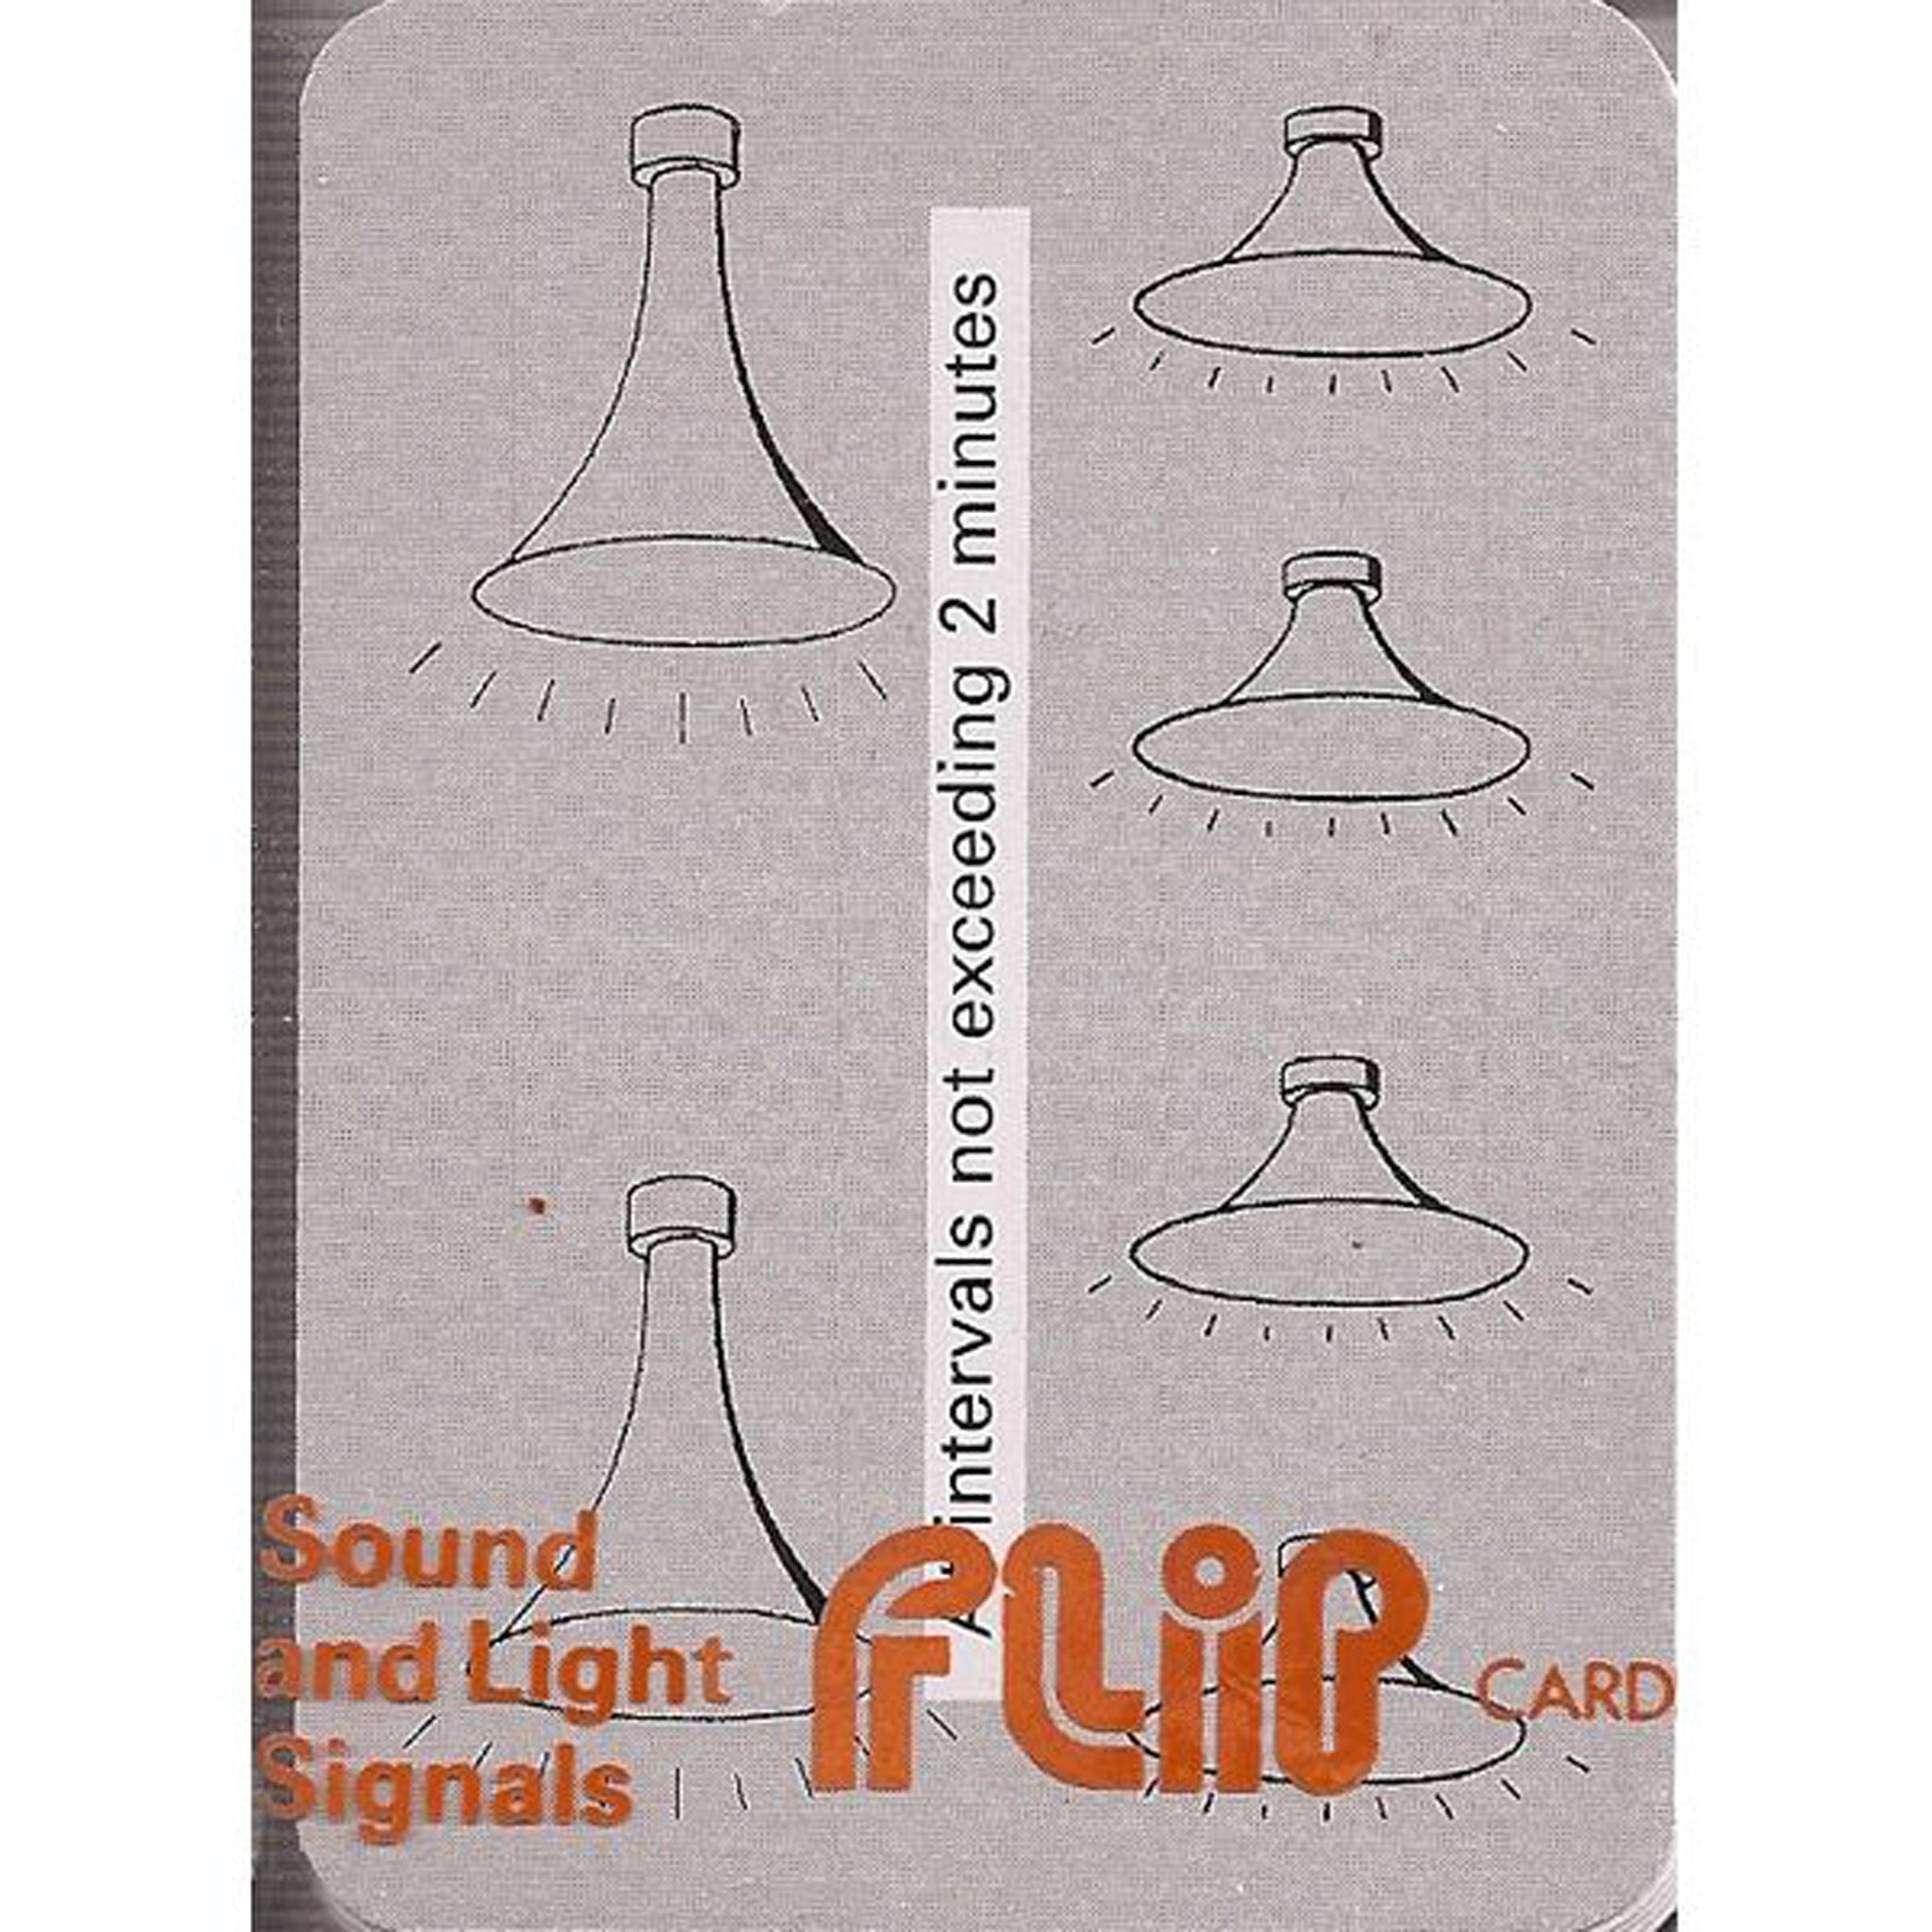 Flip Cards - Sound and Light Signals